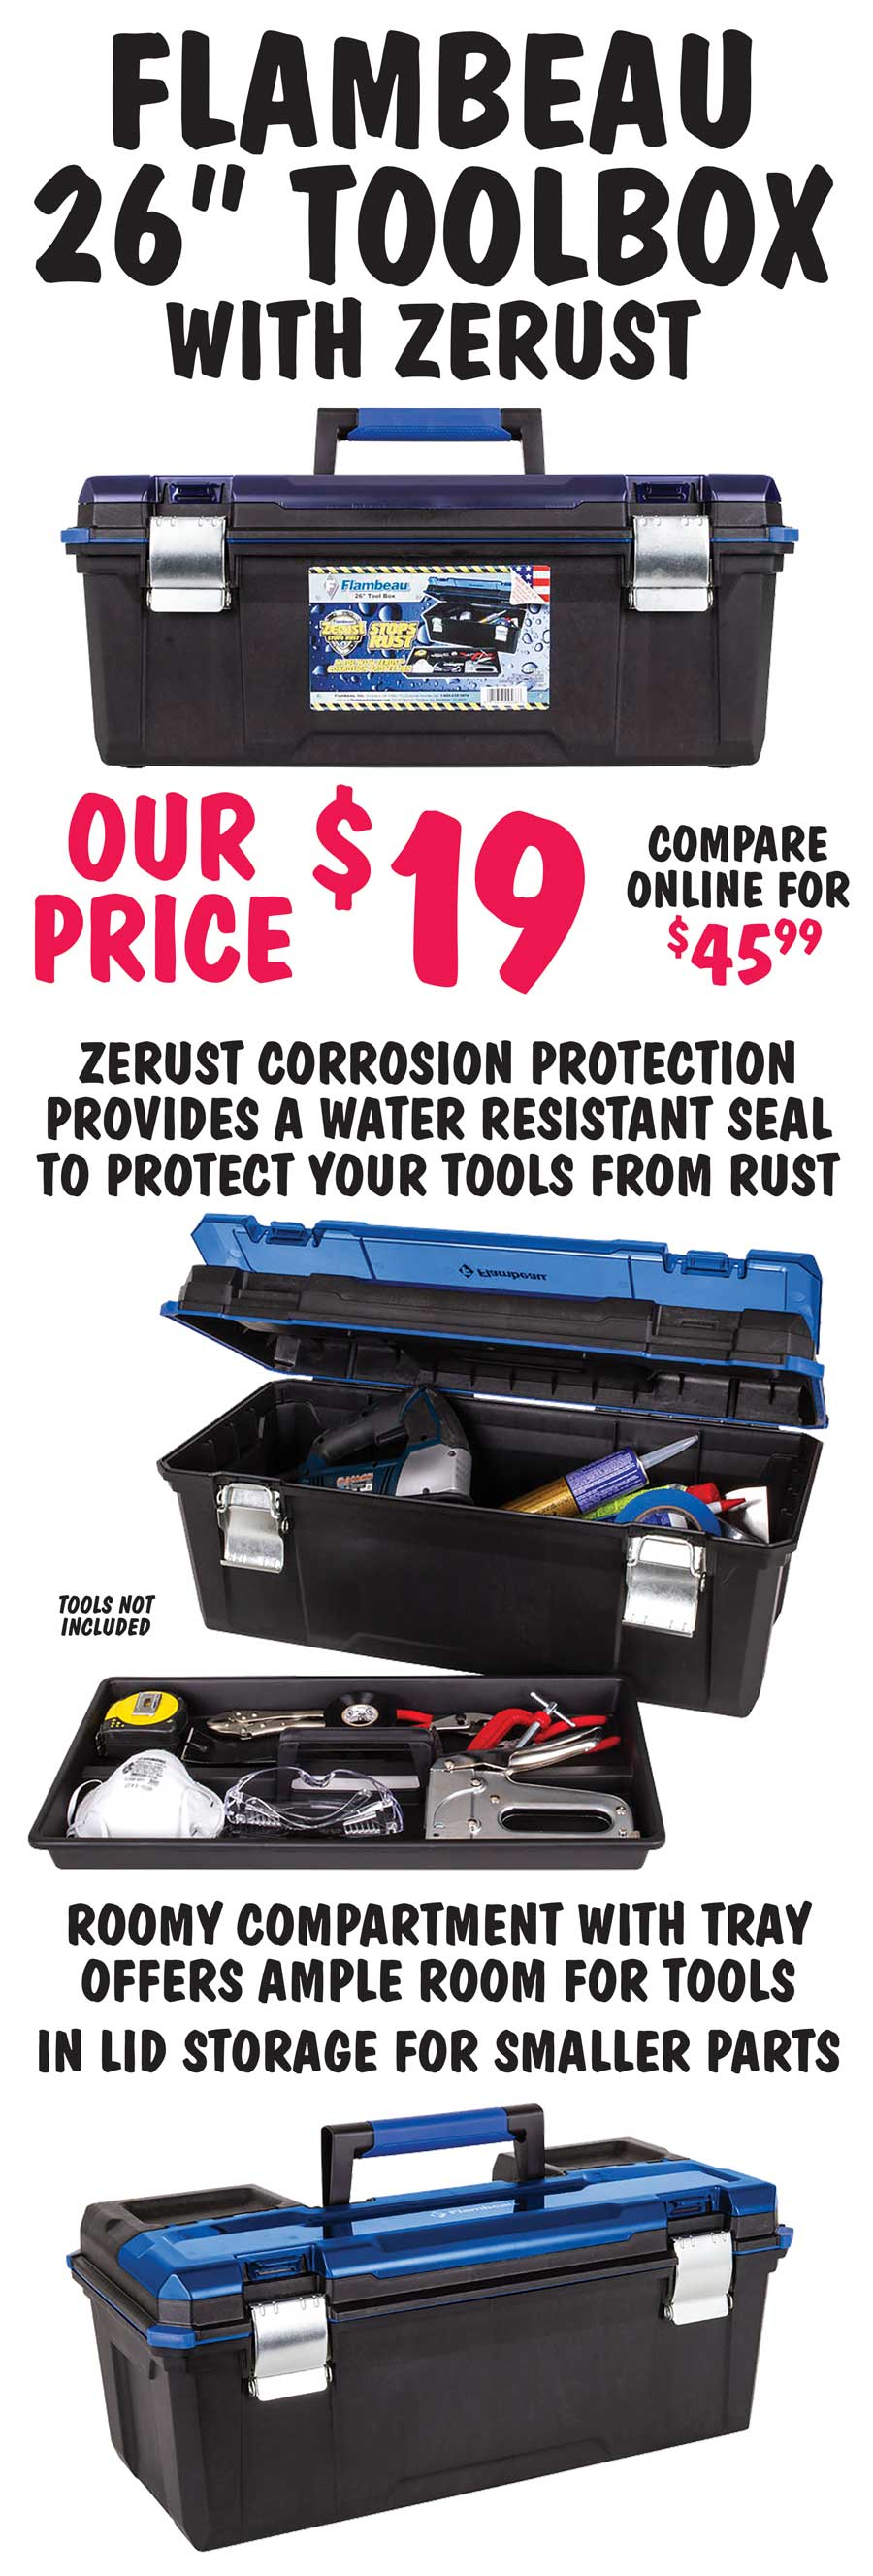 Flambeau 26 inch Toolbox with Zerust - $19